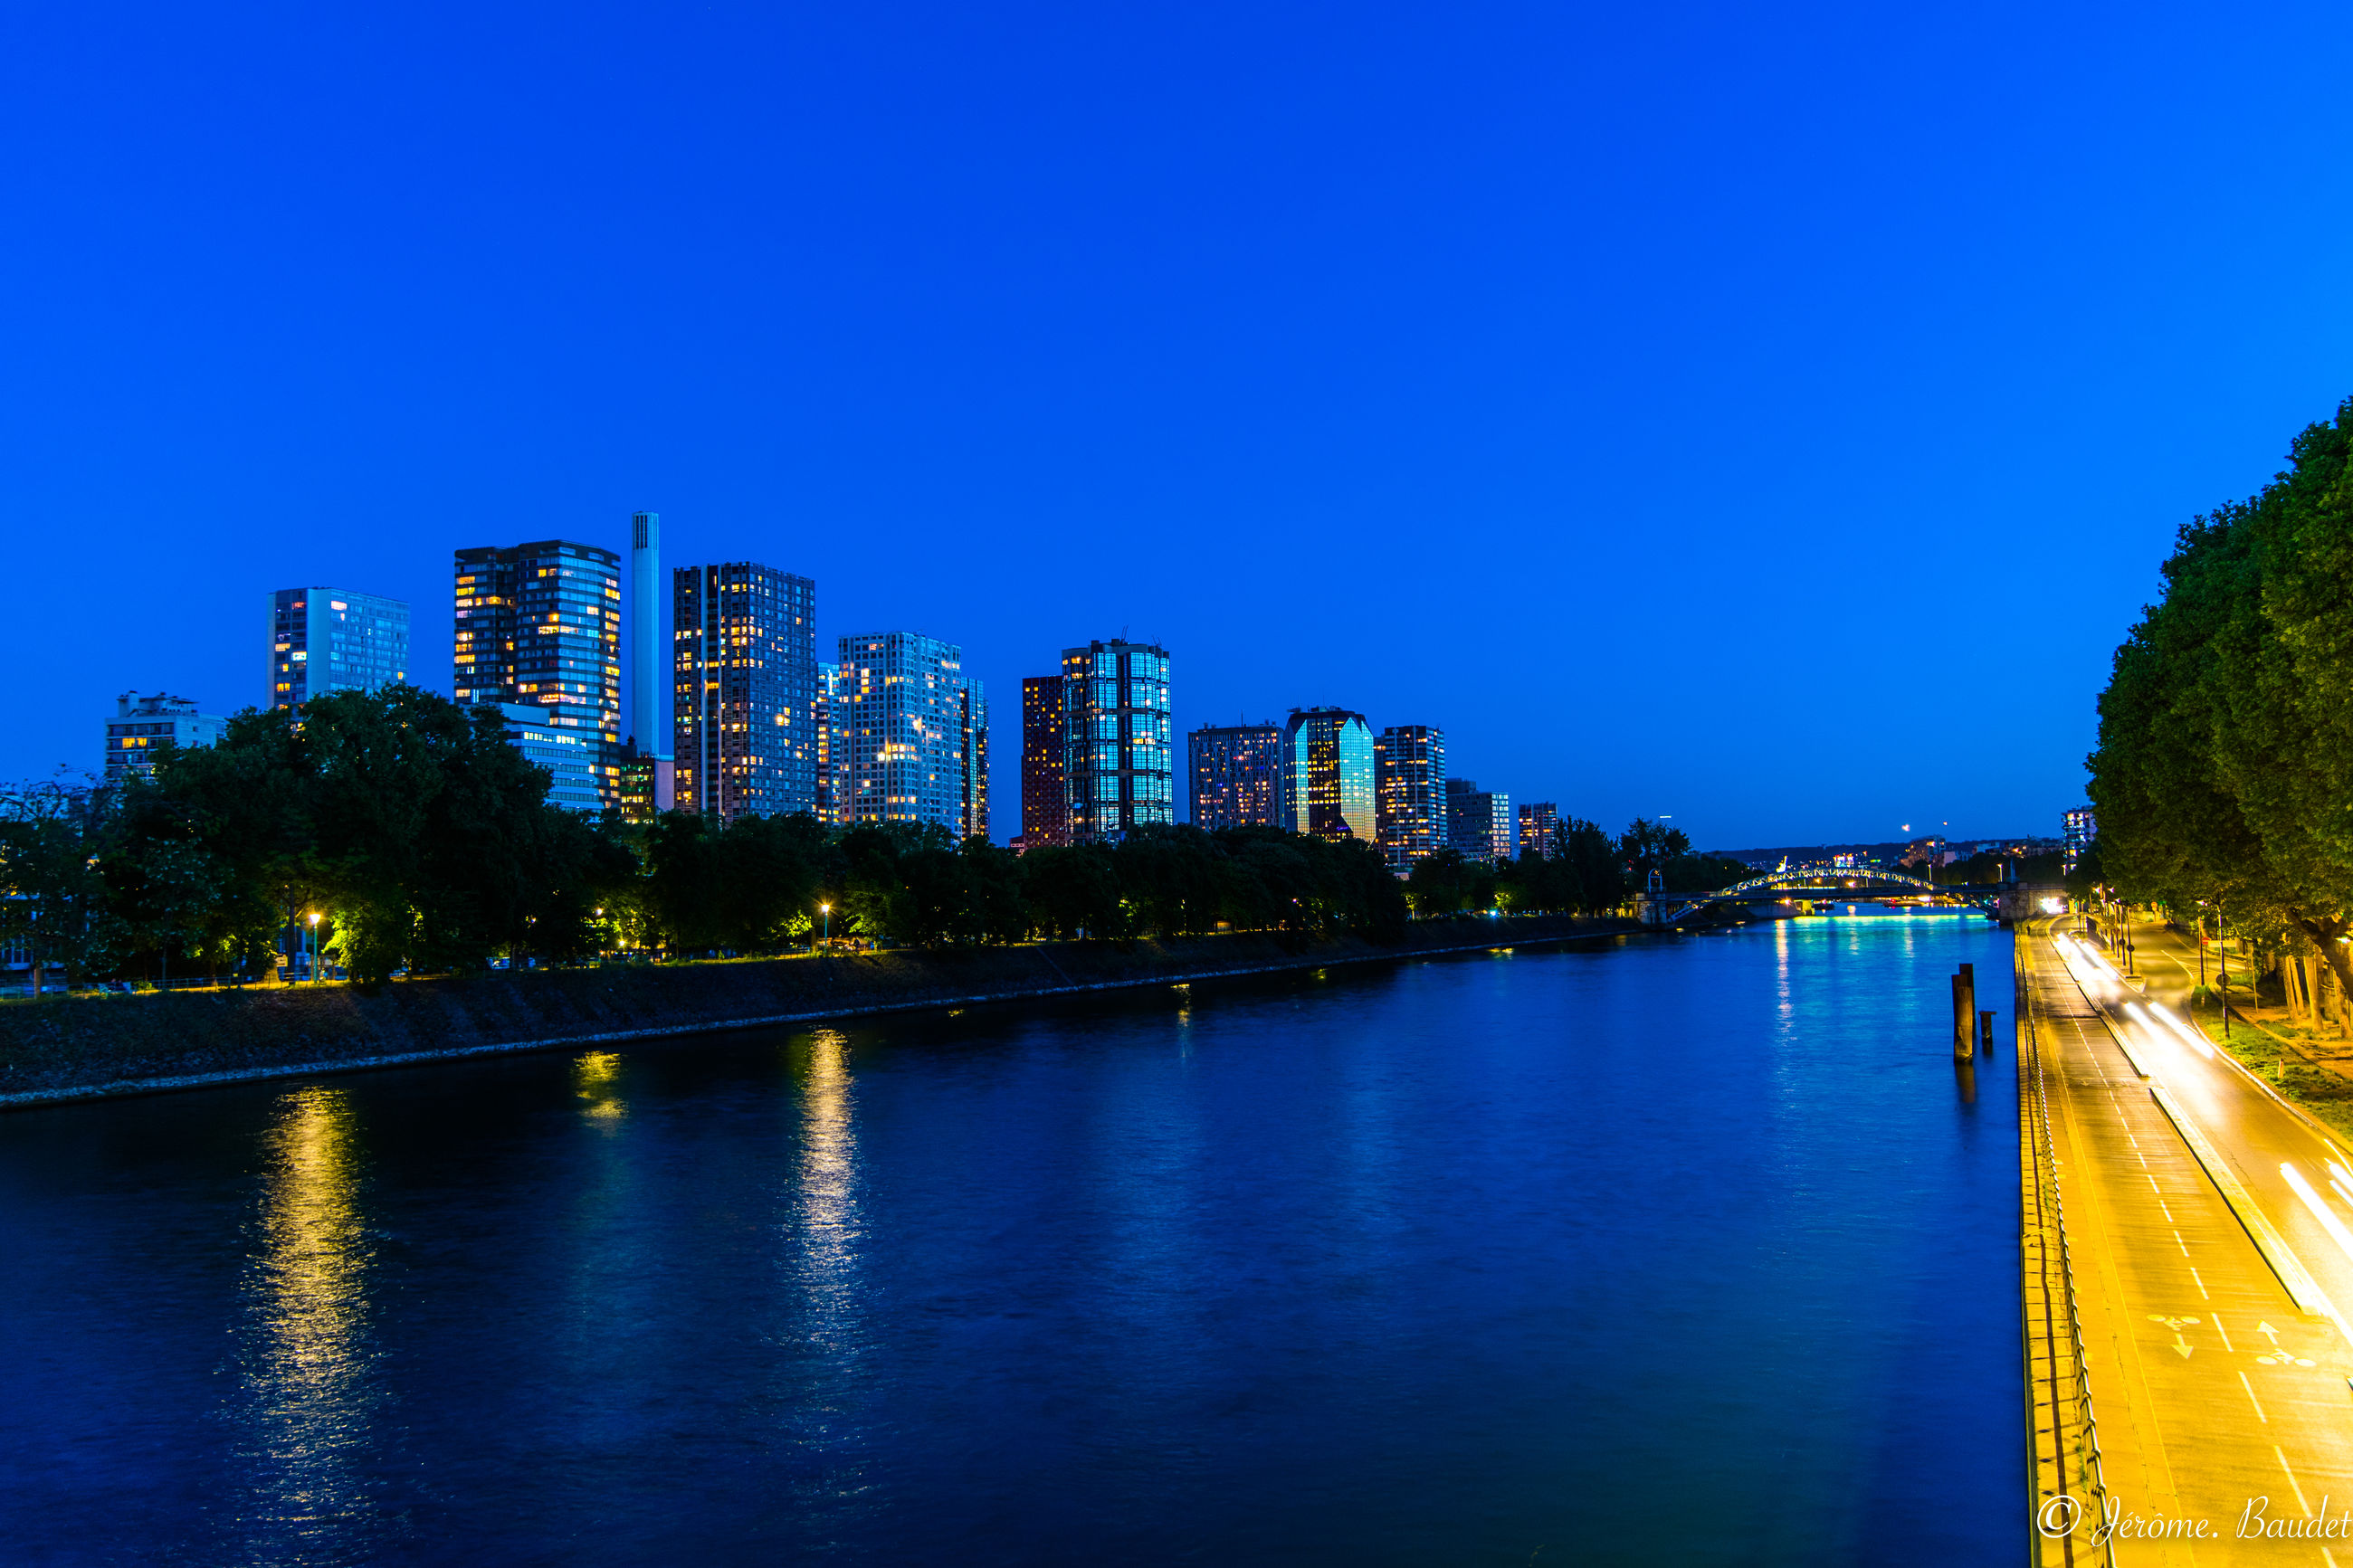 water, architecture, building exterior, built structure, sky, city, blue, illuminated, waterfront, building, nature, tree, river, reflection, no people, clear sky, night, plant, dusk, outdoors, cityscape, office building exterior, skyscraper